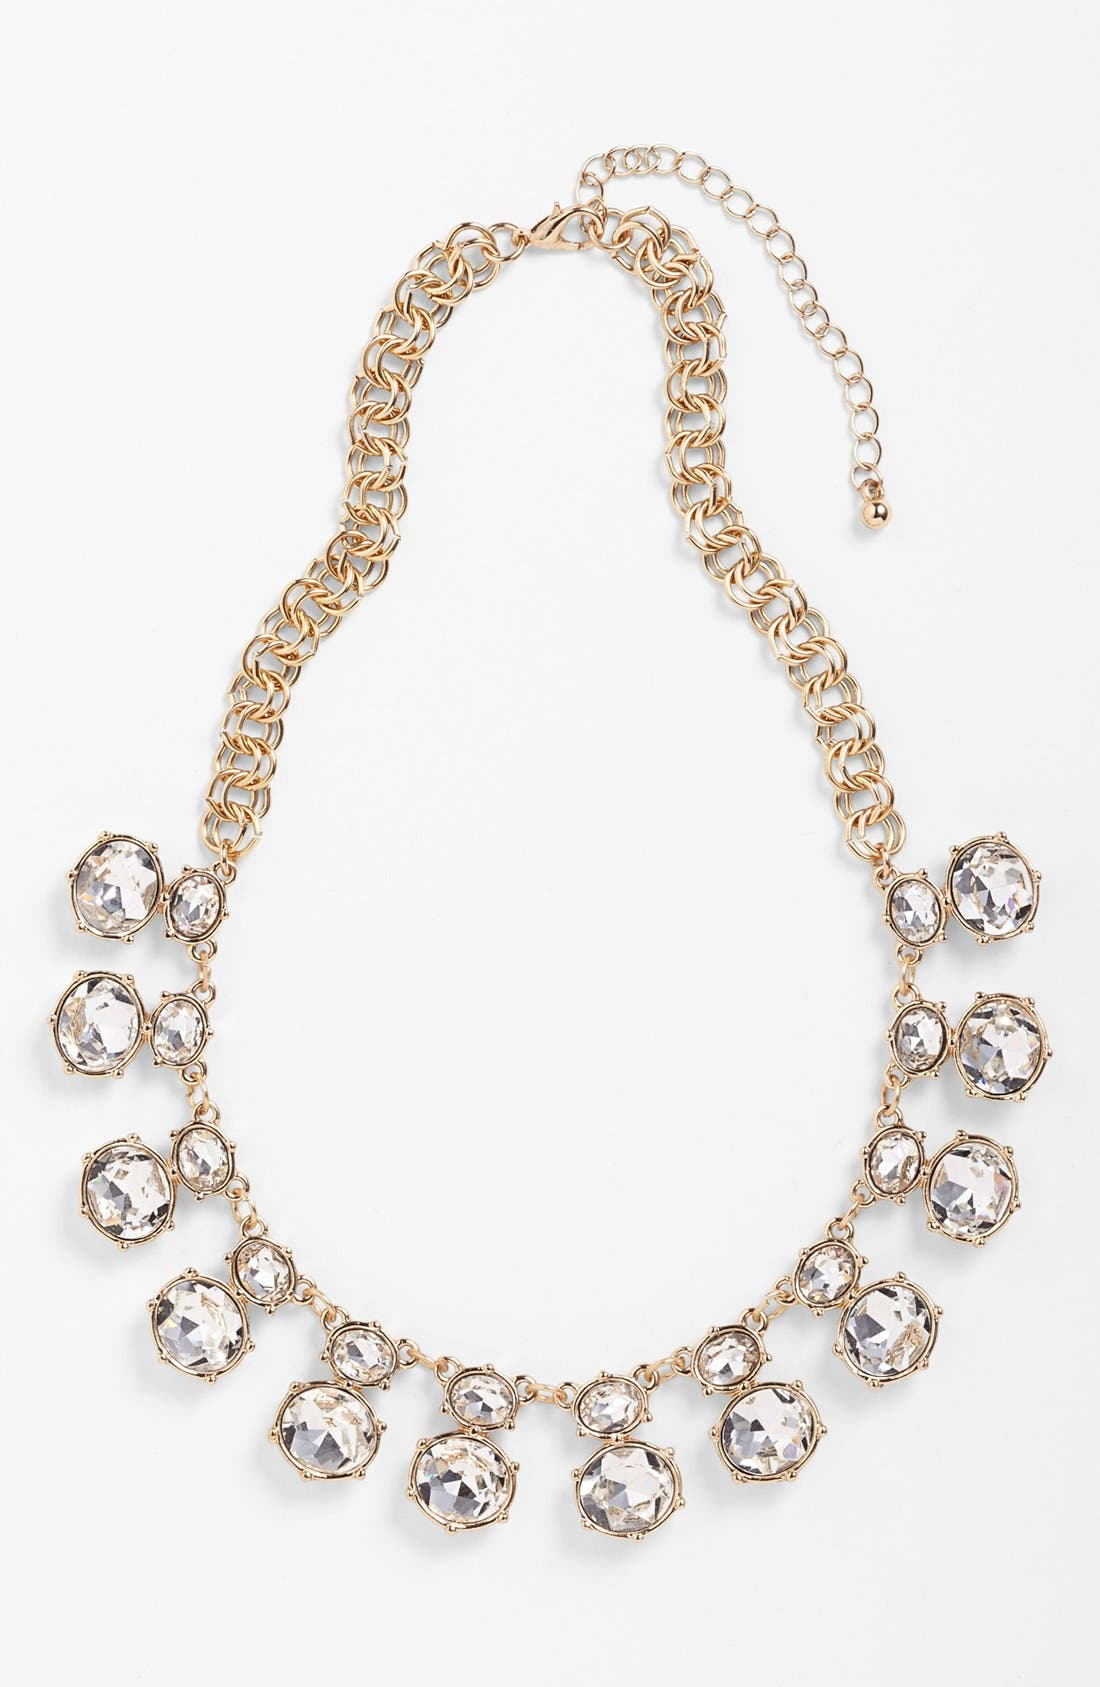 Crystal Statement Necklace,                             Main thumbnail 1, color,                             Clear/ Gold